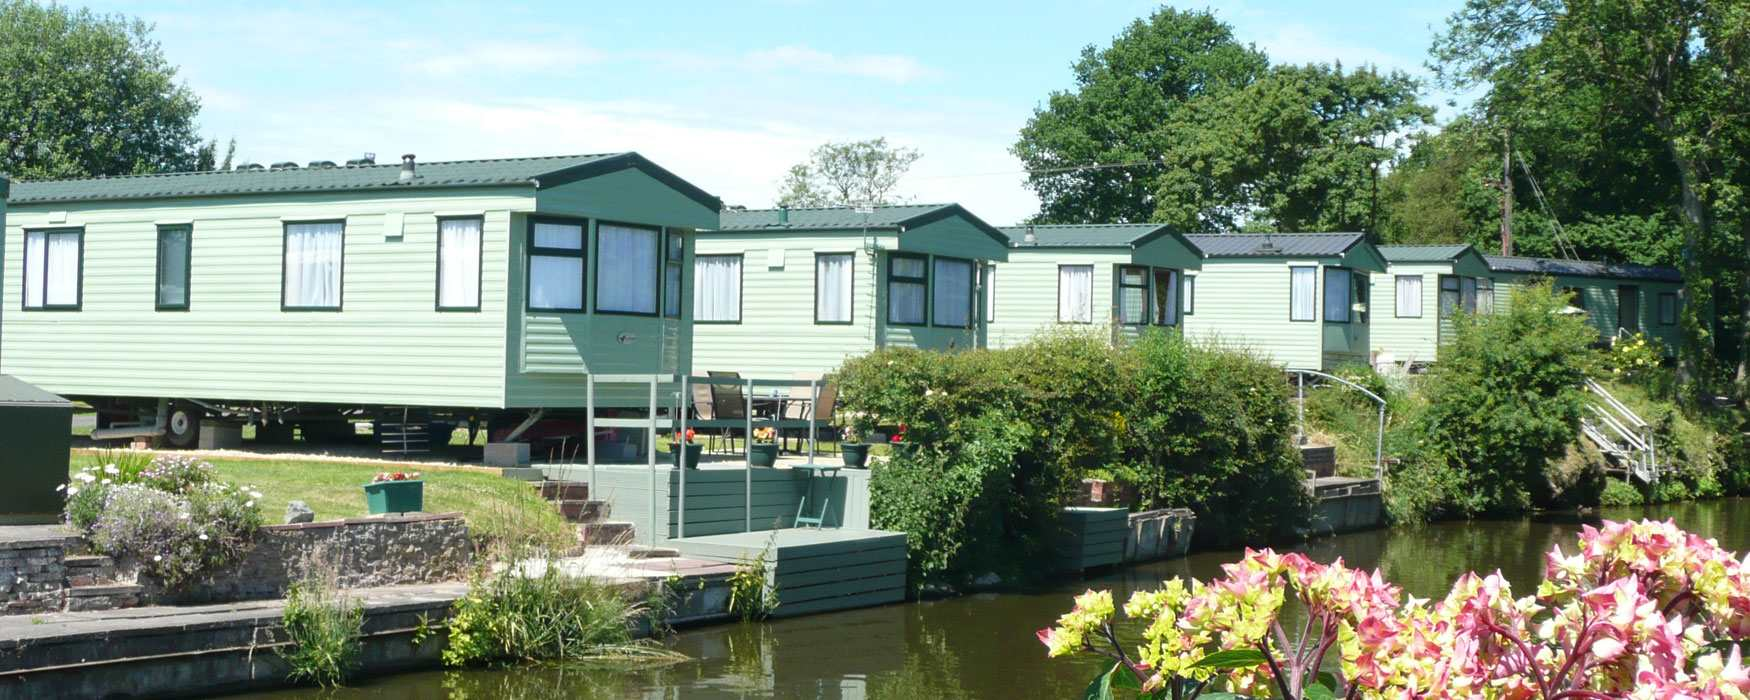 Mobile holiday homes adjacent to the canal